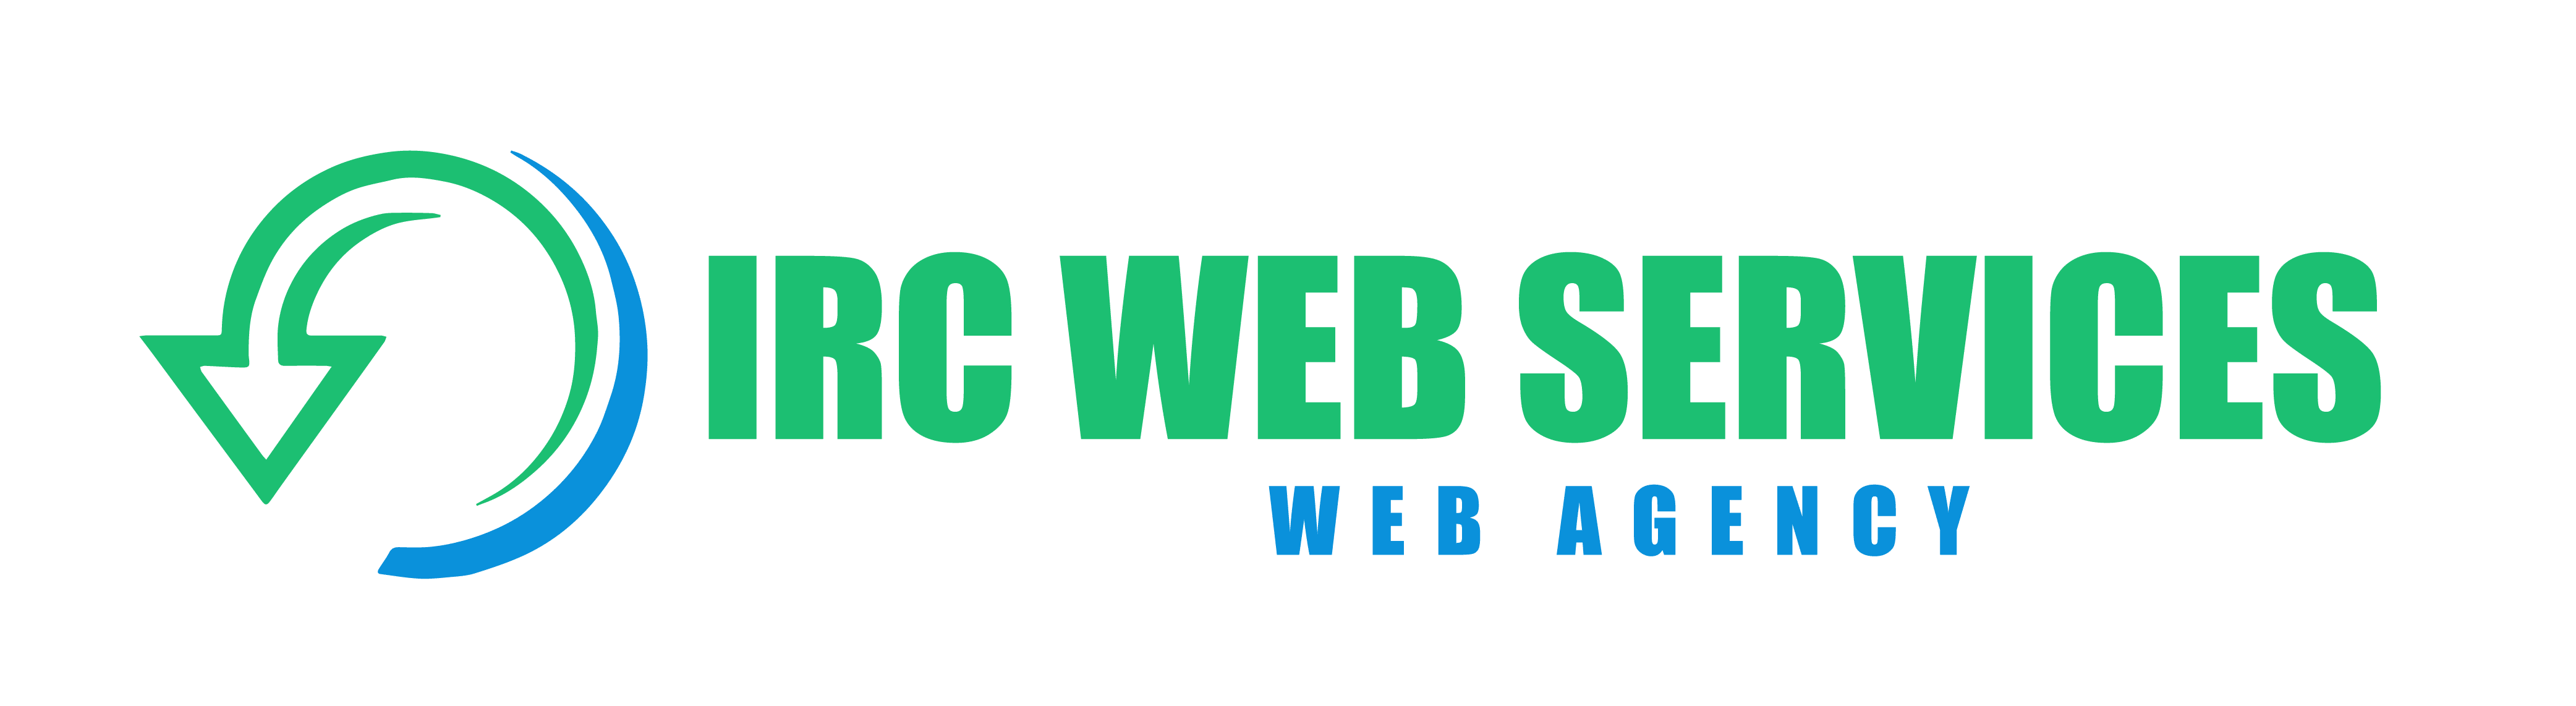 IRC Web Services